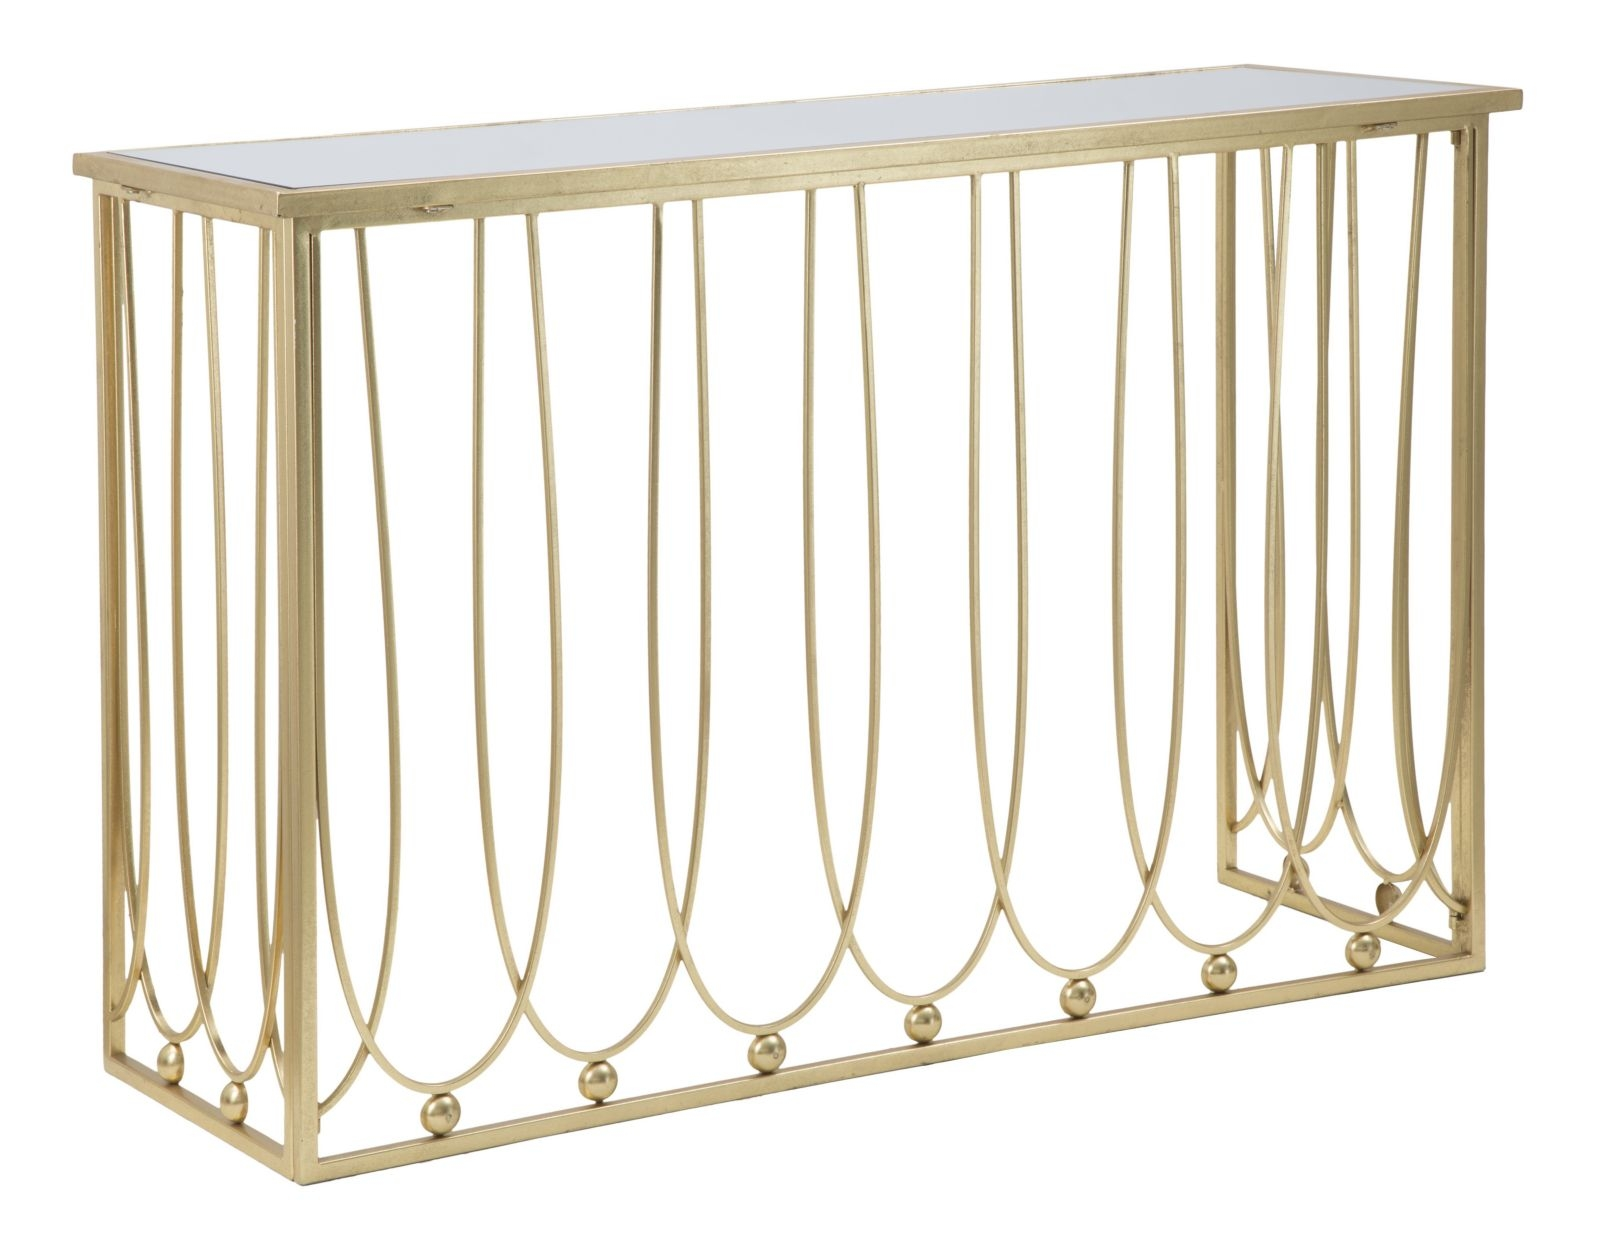 Consola din metal si sticla Amelie Gold, l120xA43xH80 cm